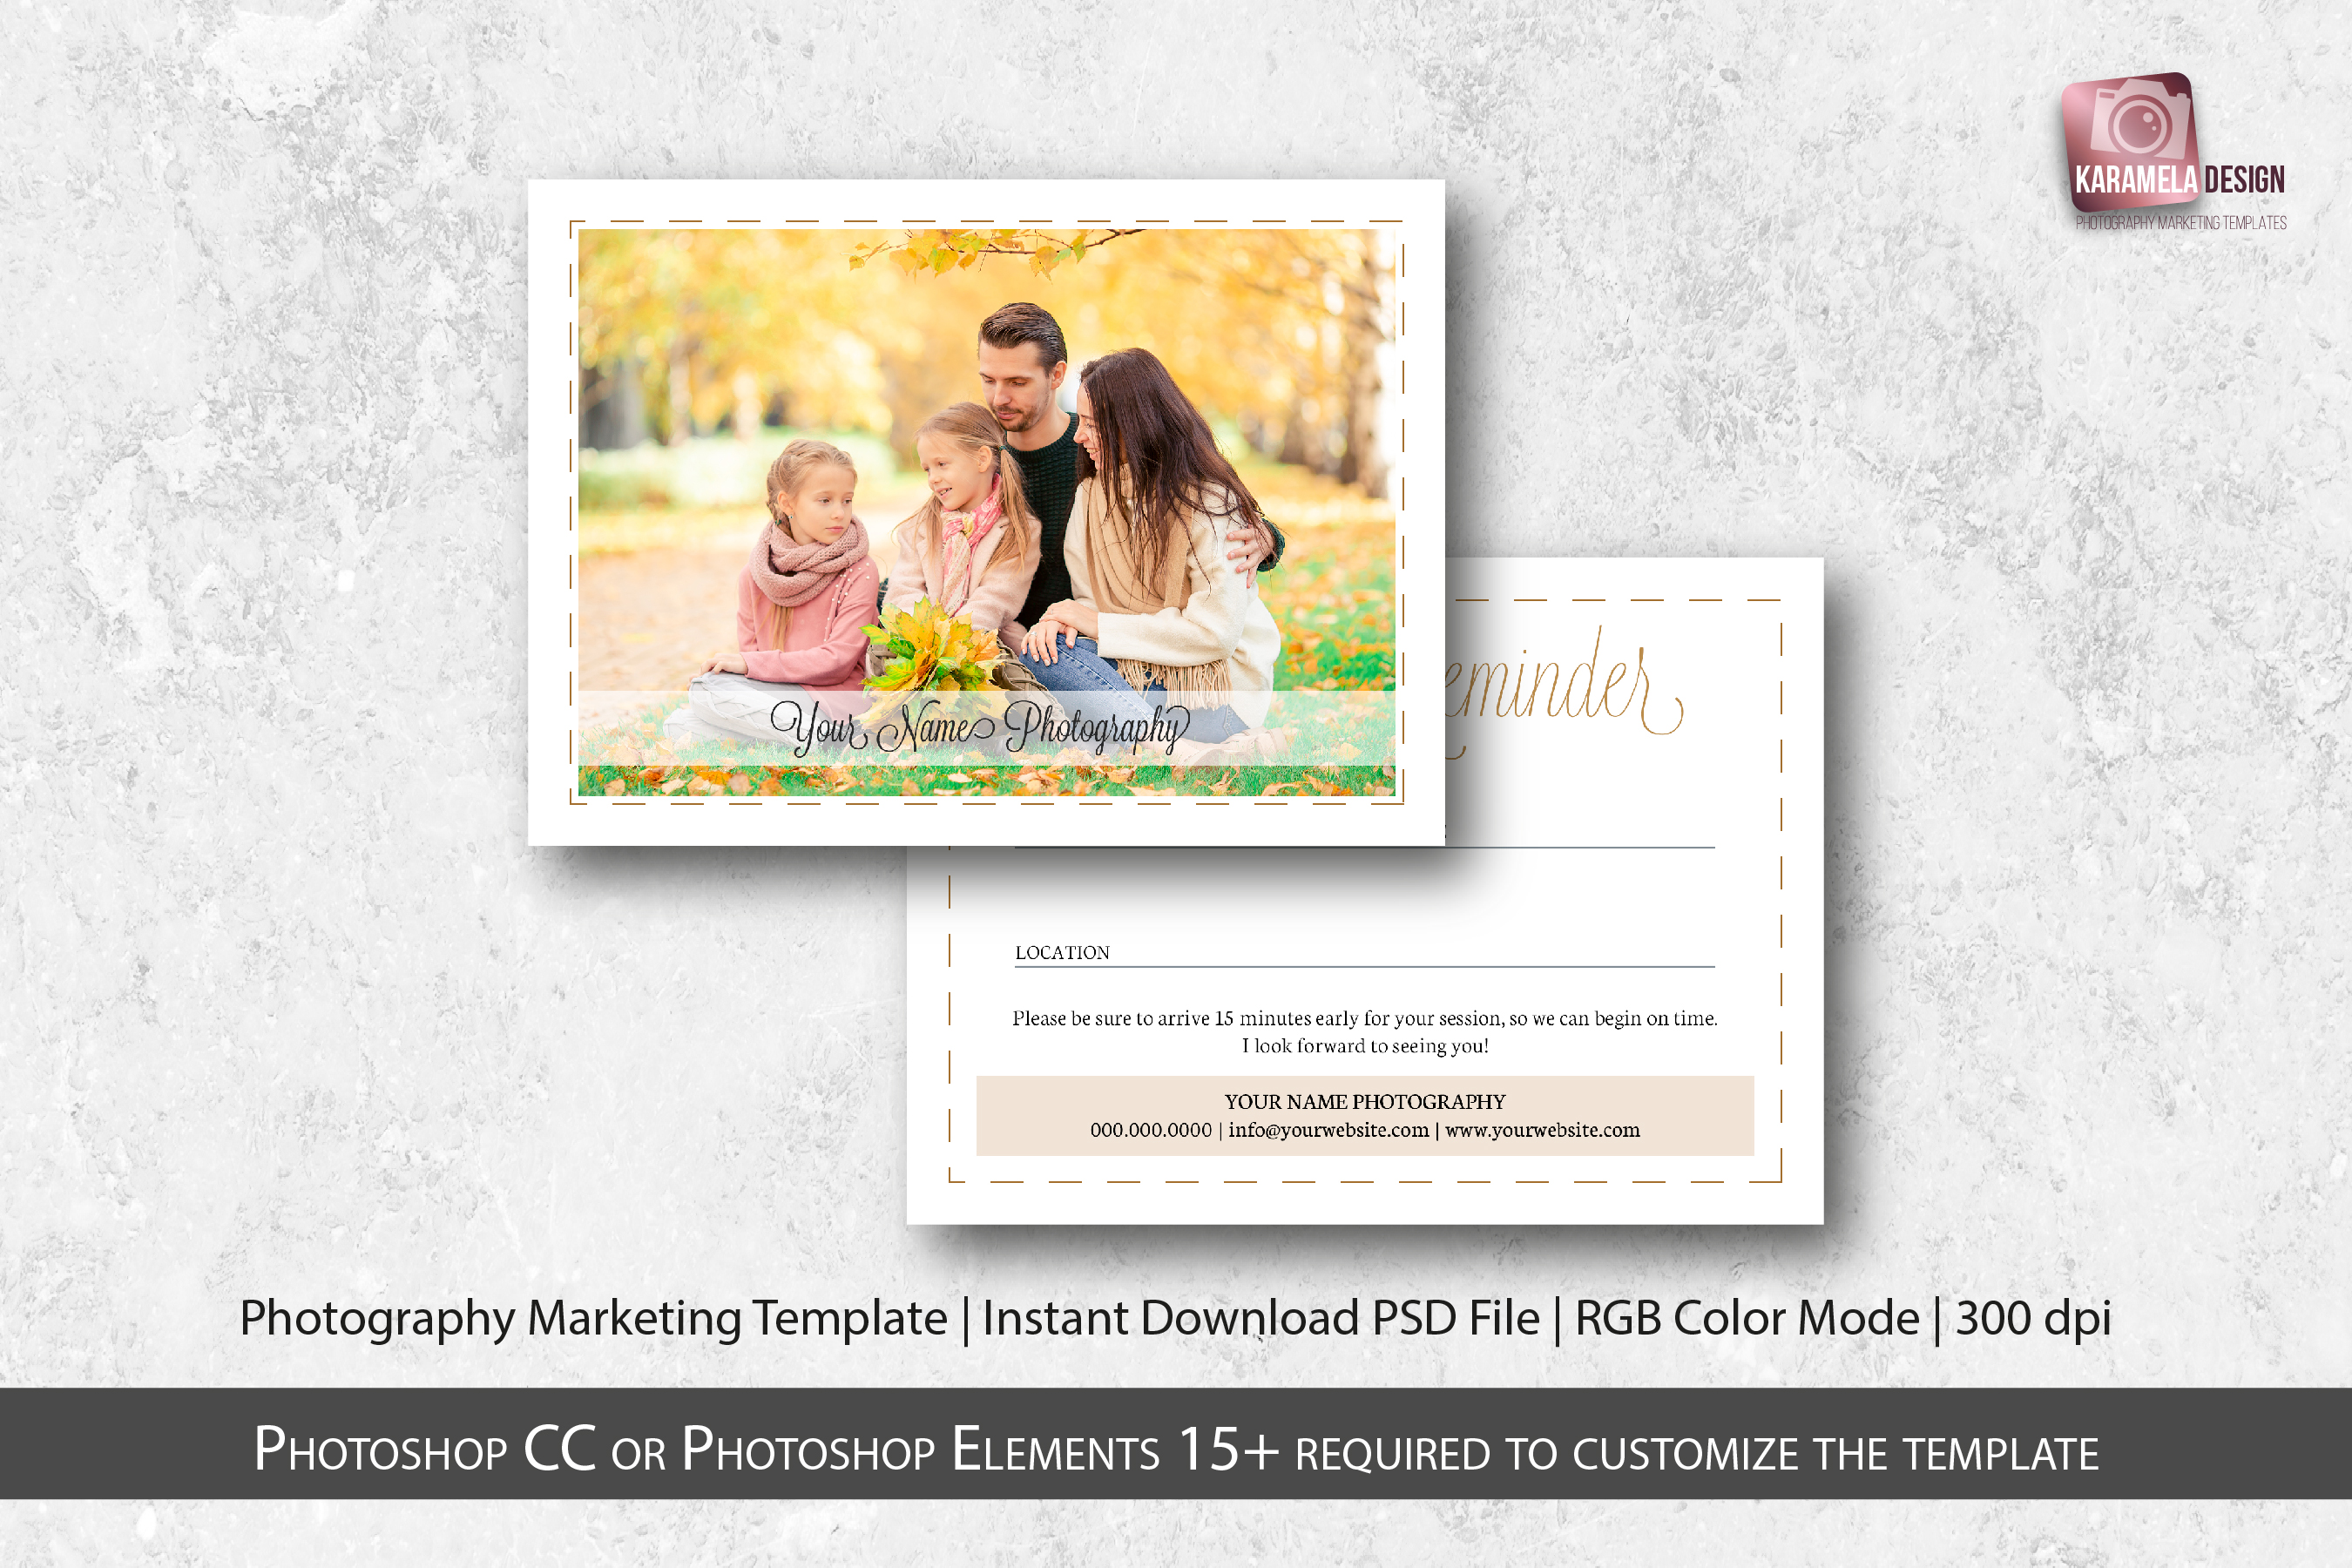 Photo Sessions Client Reminder Template example image 1